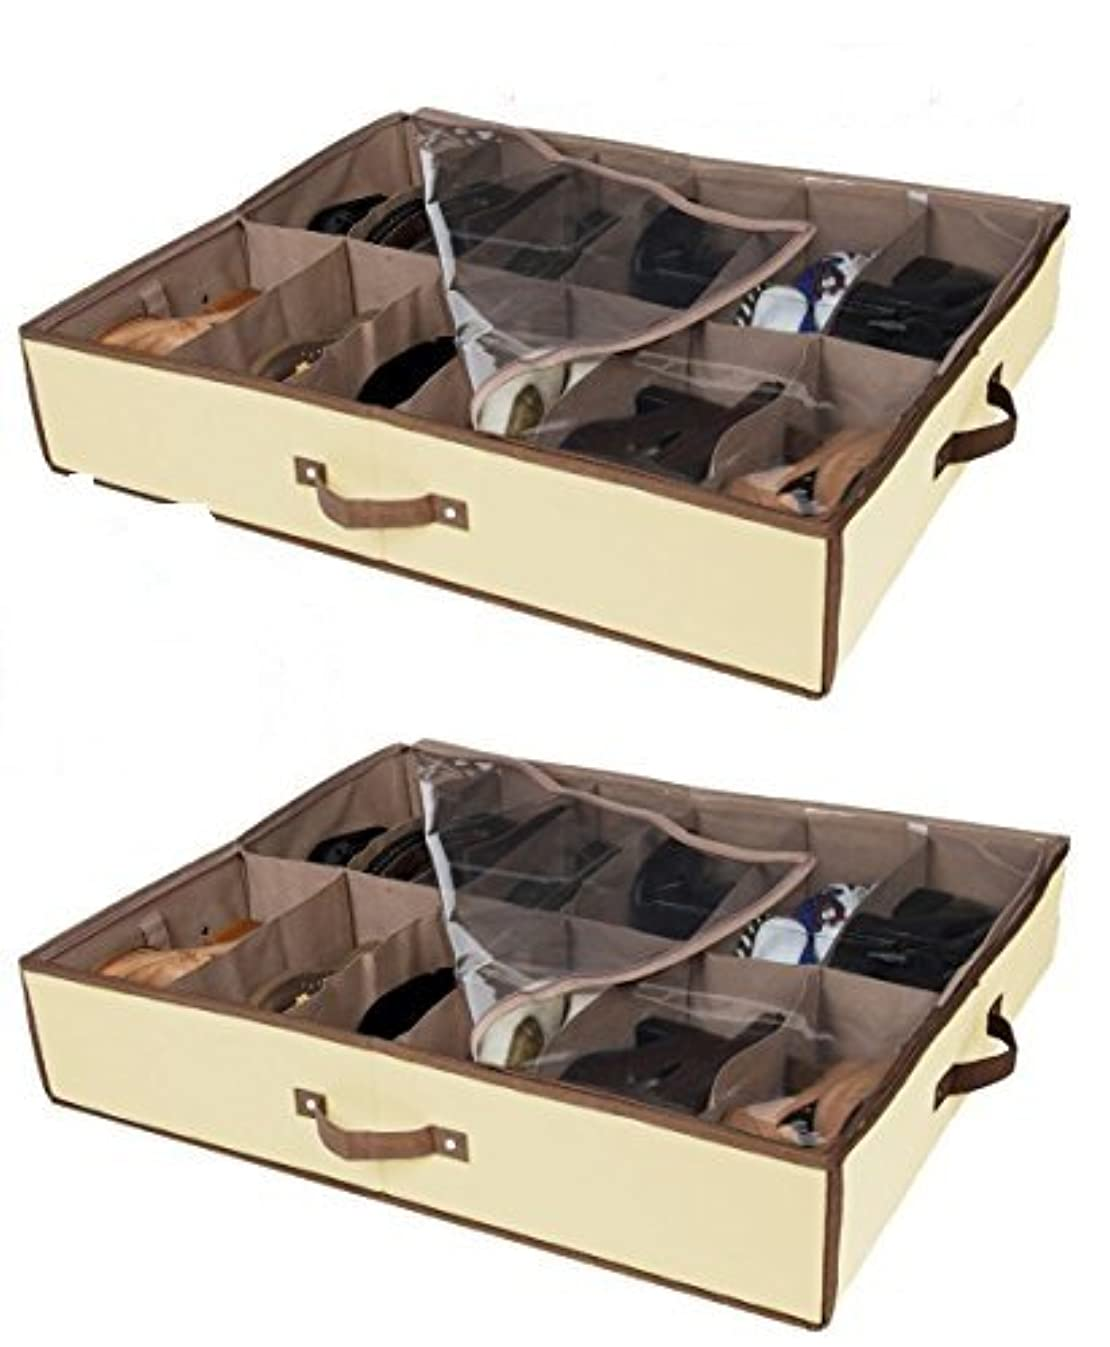 Set of 2 Under Bed Shoe Storage - All 4 Sides is Sturdy- Drawers,Closet Box Organizer Natural Canvas with See-Through Top, Brown Trim, Size: 23 ?'' x 29 ?'' x 5''